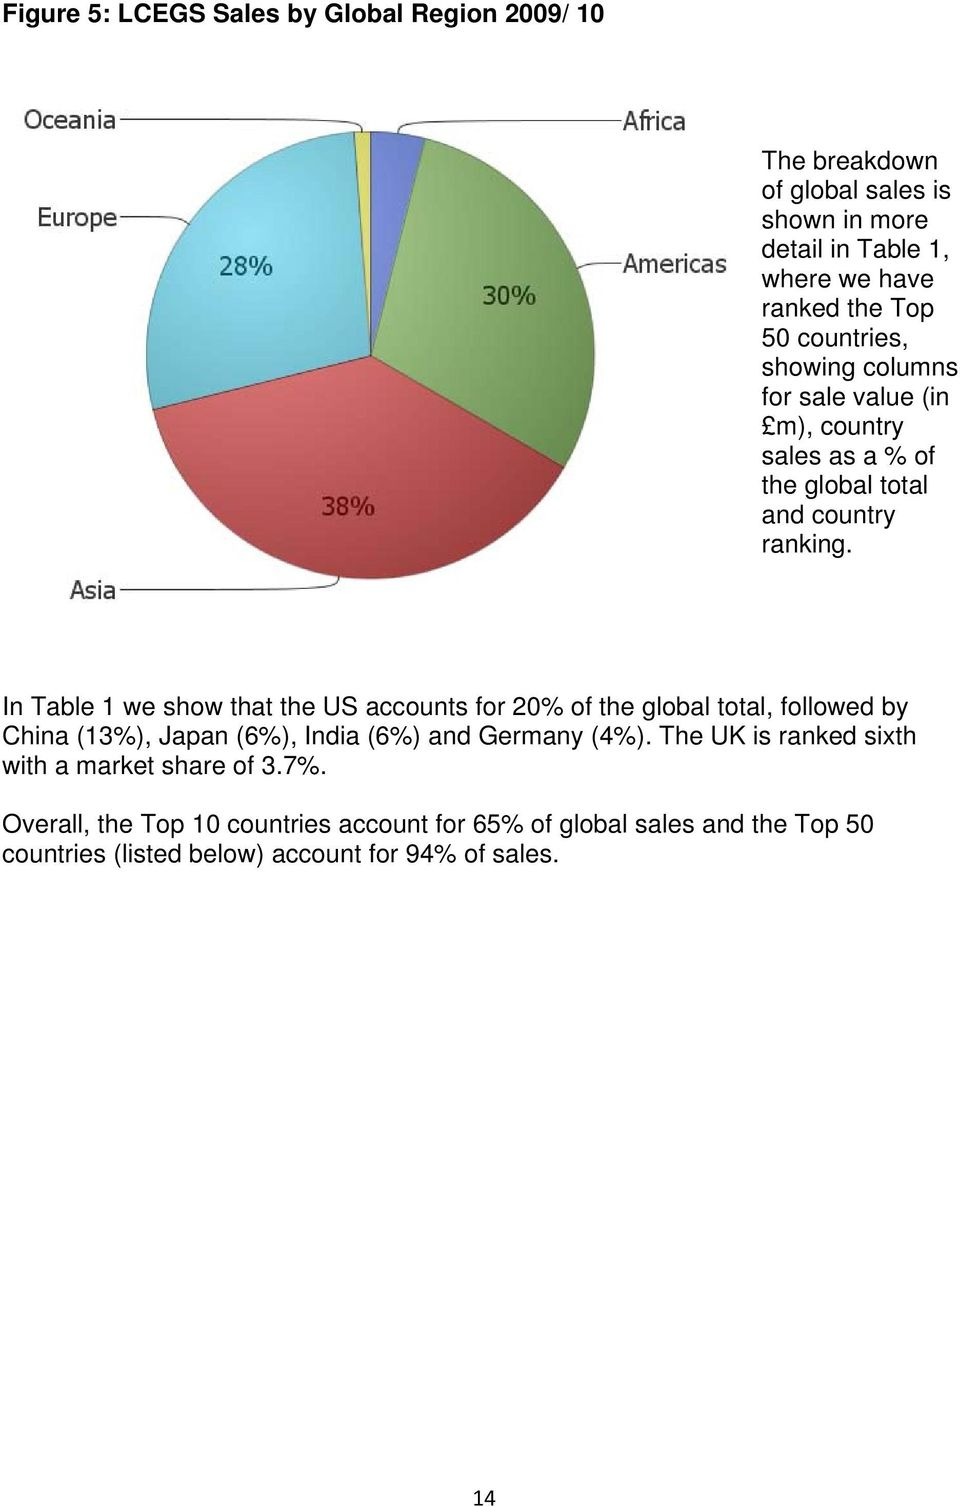 In Table 1 we show that the US accounts for 20% of the global total, followed by China (13%), Japan (6%), India (6%) and Germany (4%).